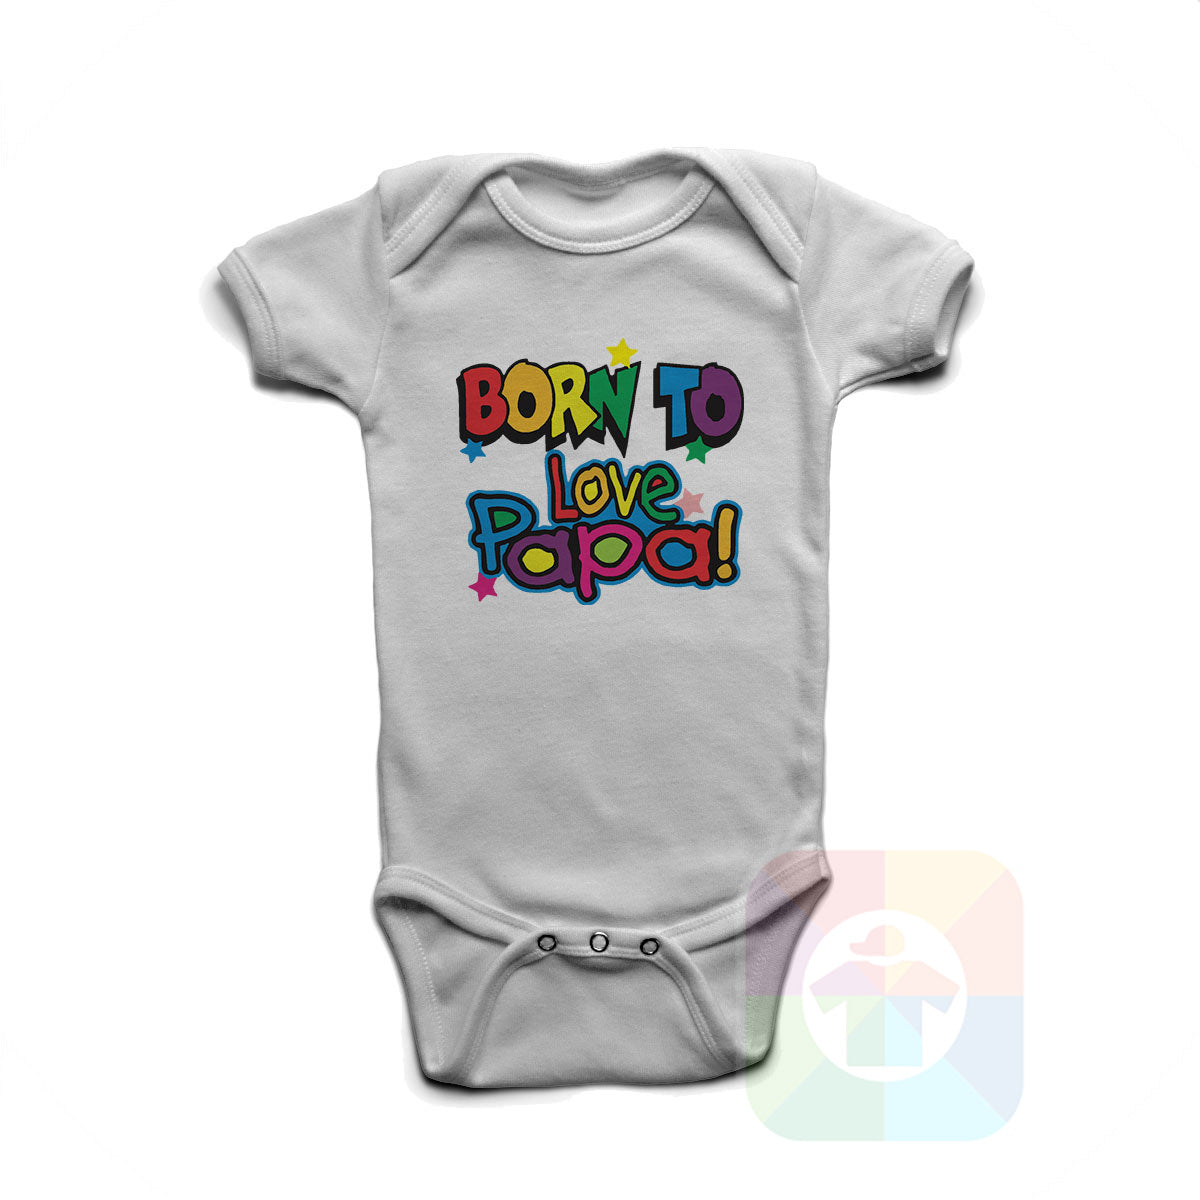 A WHITE Baby Onesie with the  ' Baby onesie 'BORN TO LOVE PAPA' kids funny novelty design. #8053 / New Born, 6m, 12m, 24m Sizes ' design.